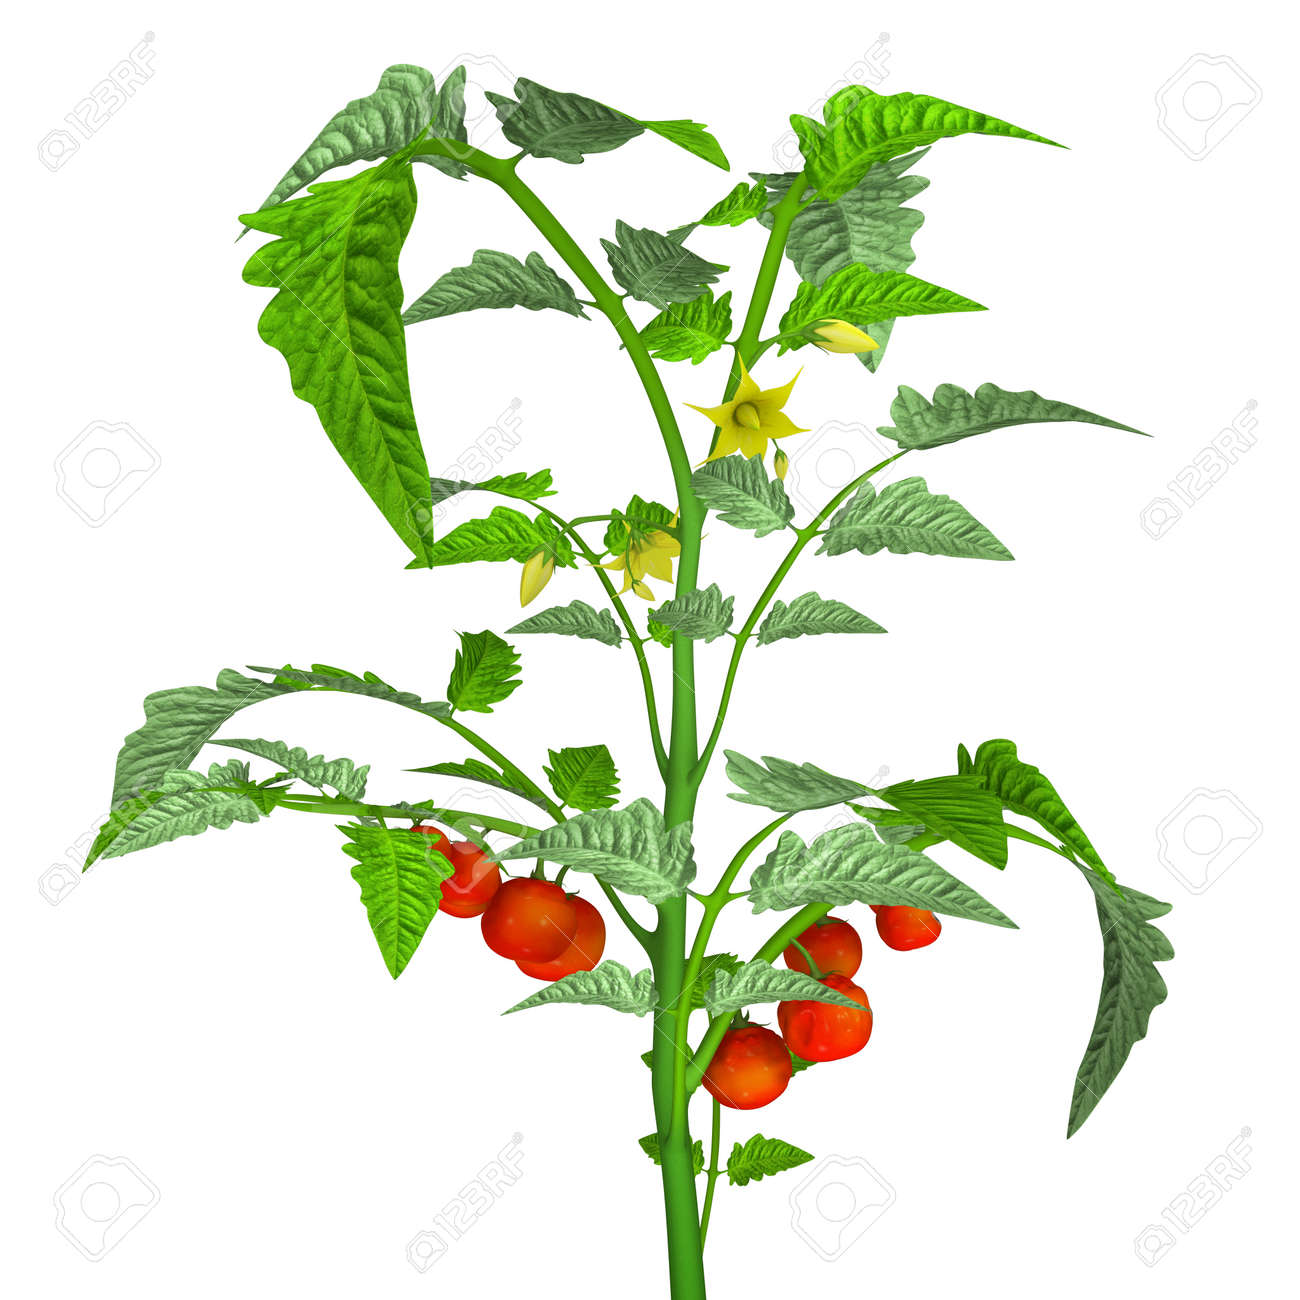 tomato plant stock photo picture and royalty free image image